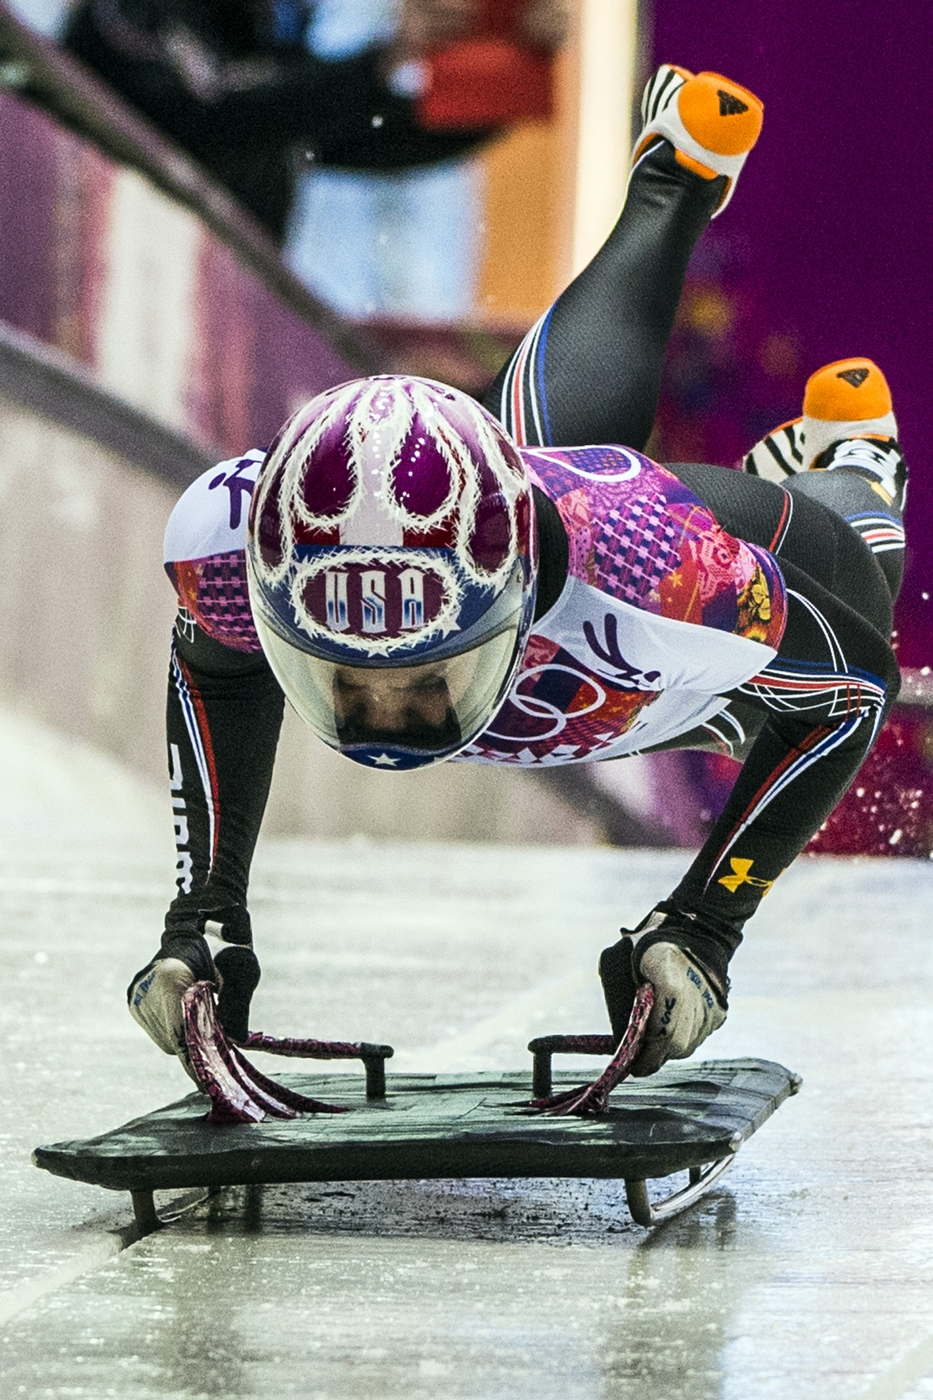 Noelle Pikus Pace loading on her skeleton sled at the Olympics in Sochi.